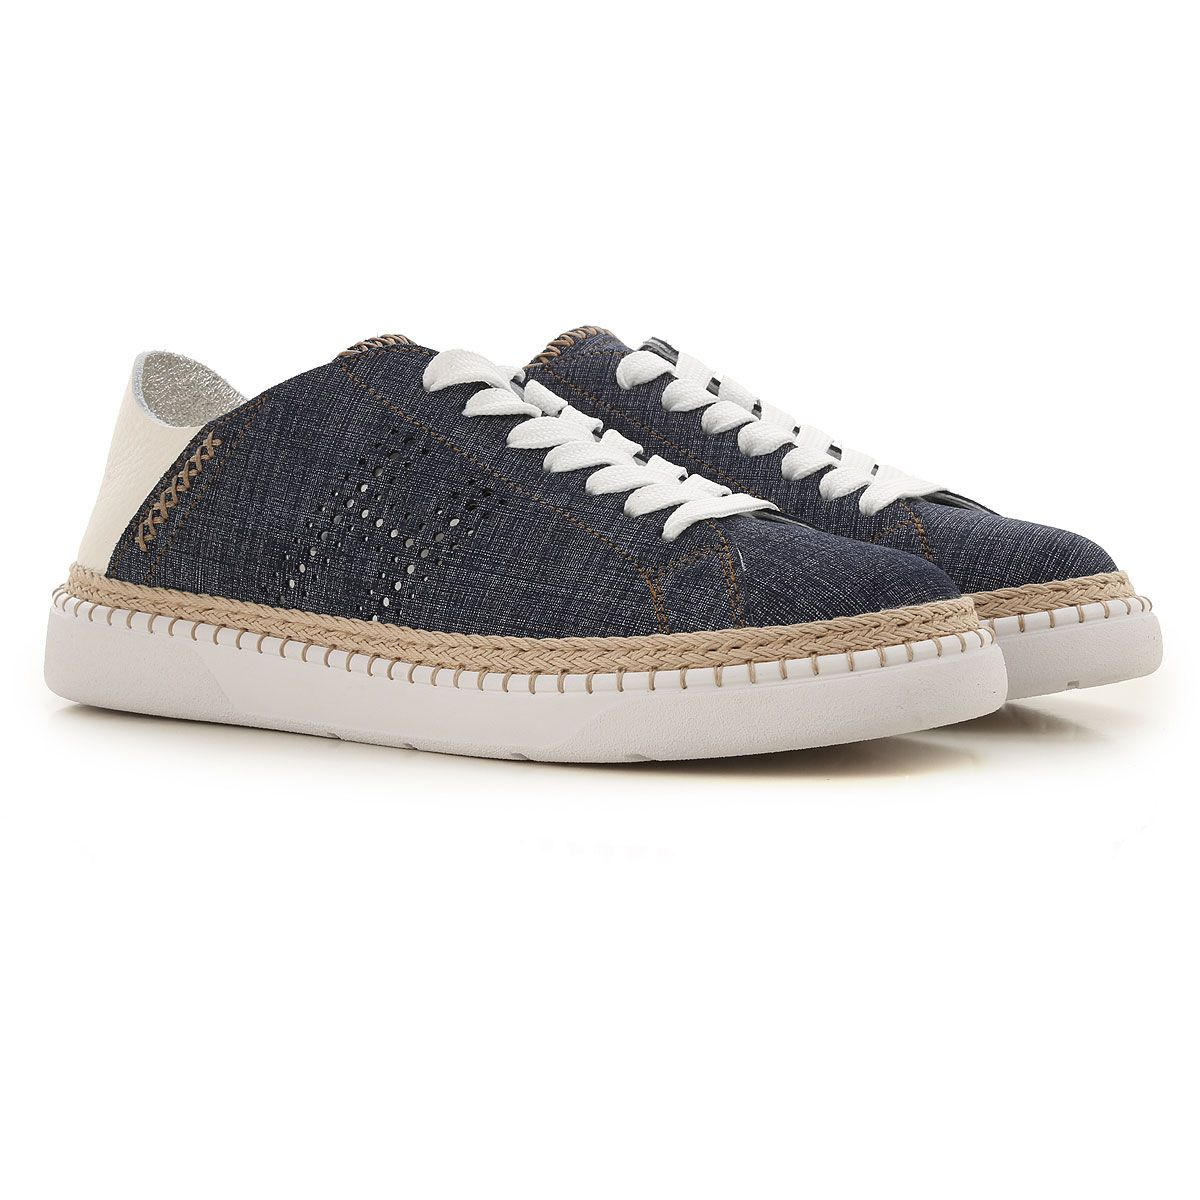 bas prix d3cd7 f9942 Hogan Shoes and Sneakers from the Latest Collection. Hogan ...